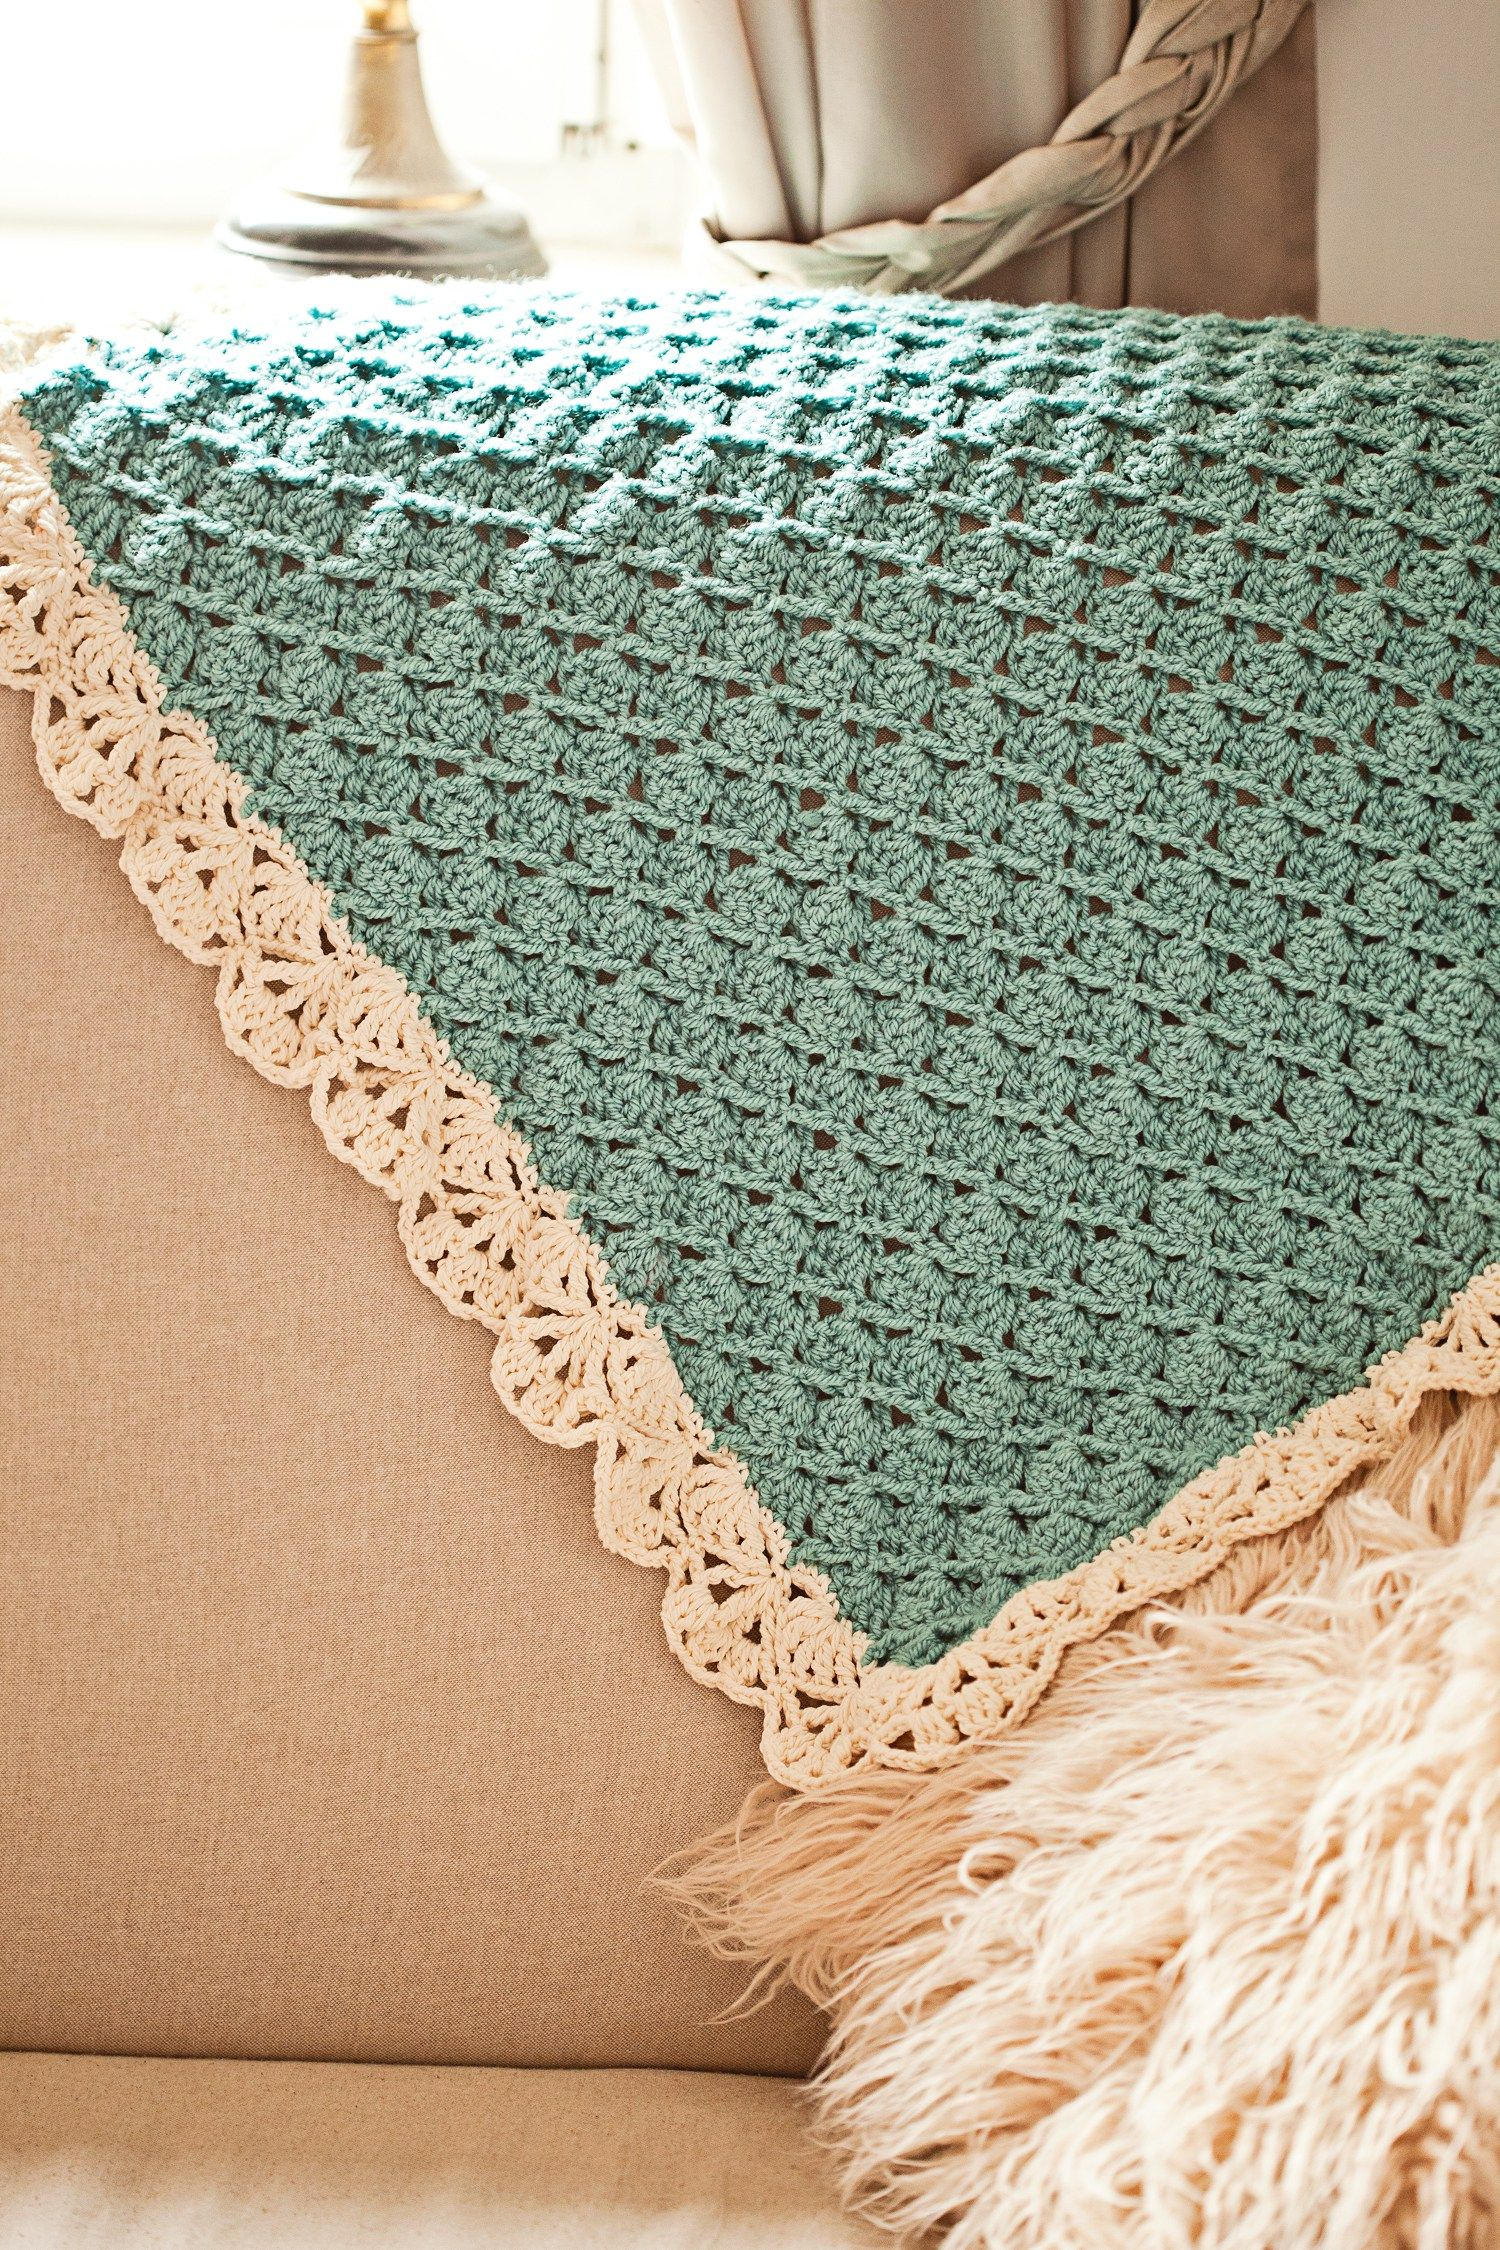 Seashell blanket crochet pattern by mon petit violon httpswww seashell blanket crochet pattern by mon petit violon httpsetsy bankloansurffo Images